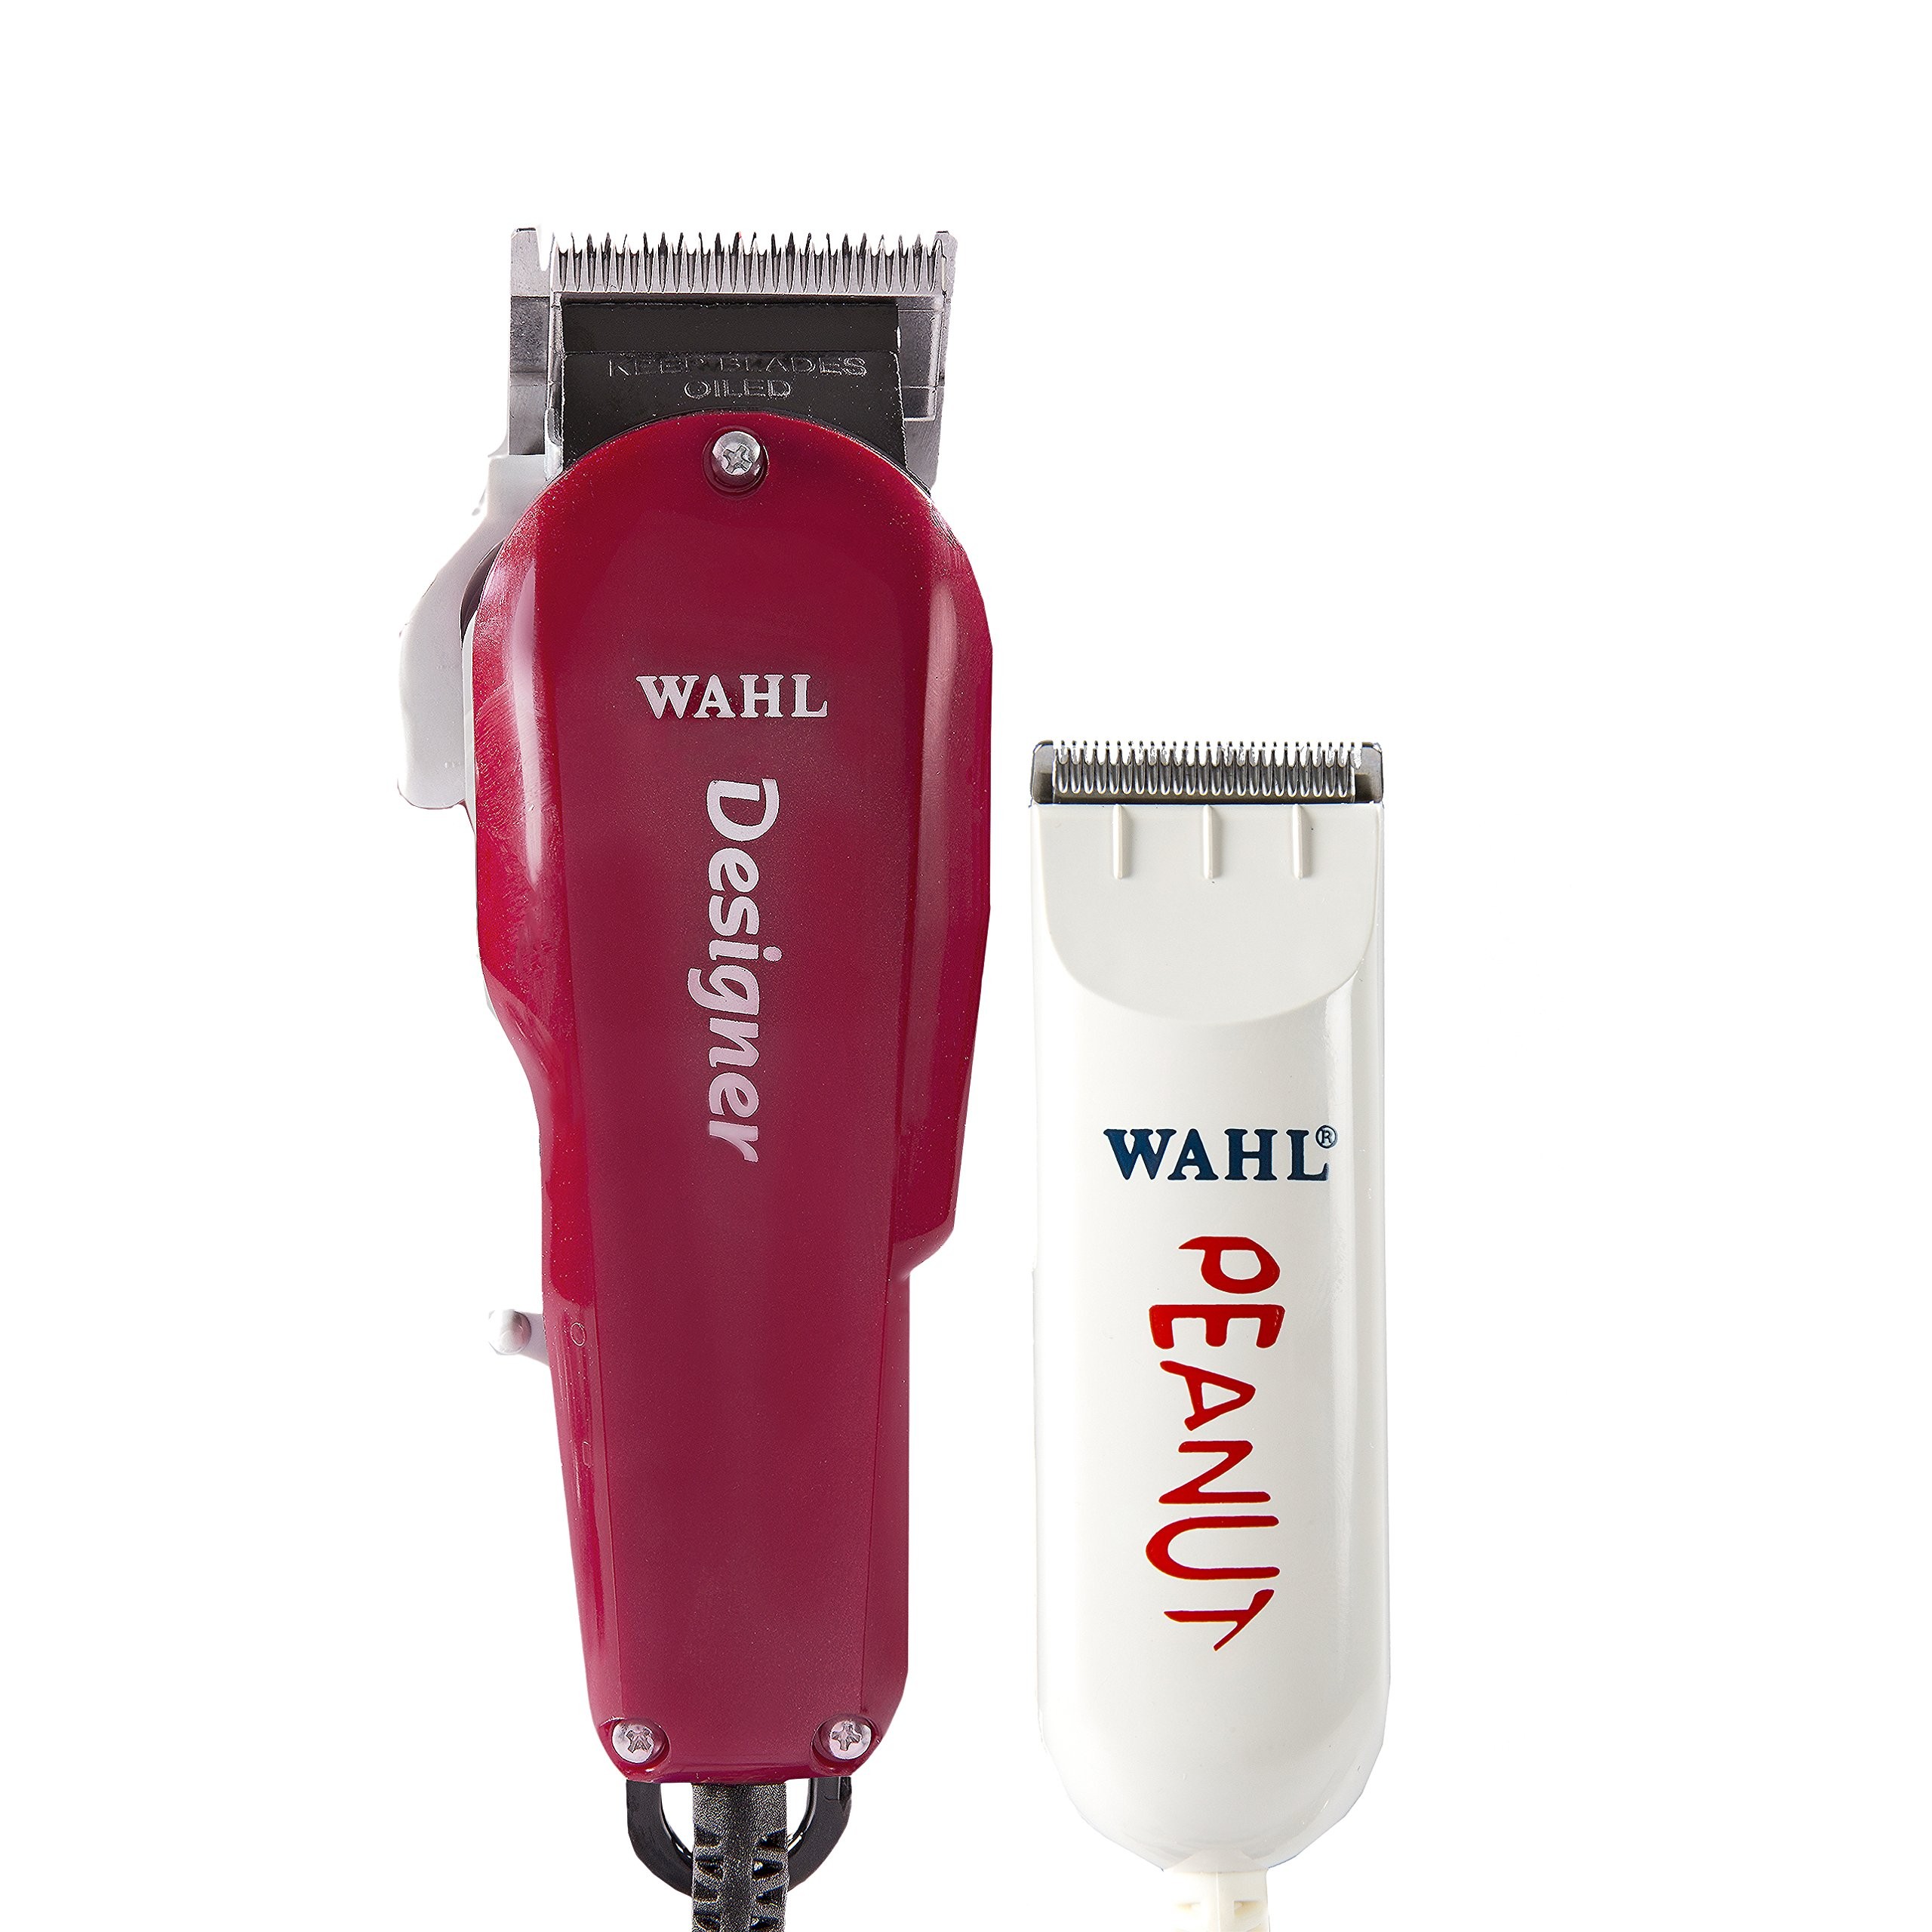 Wahl Professional All Star Clipper/Trimmer Combo #8331 – Features Designer Clip and Peanut Trimmer – Includes Accessories - Red